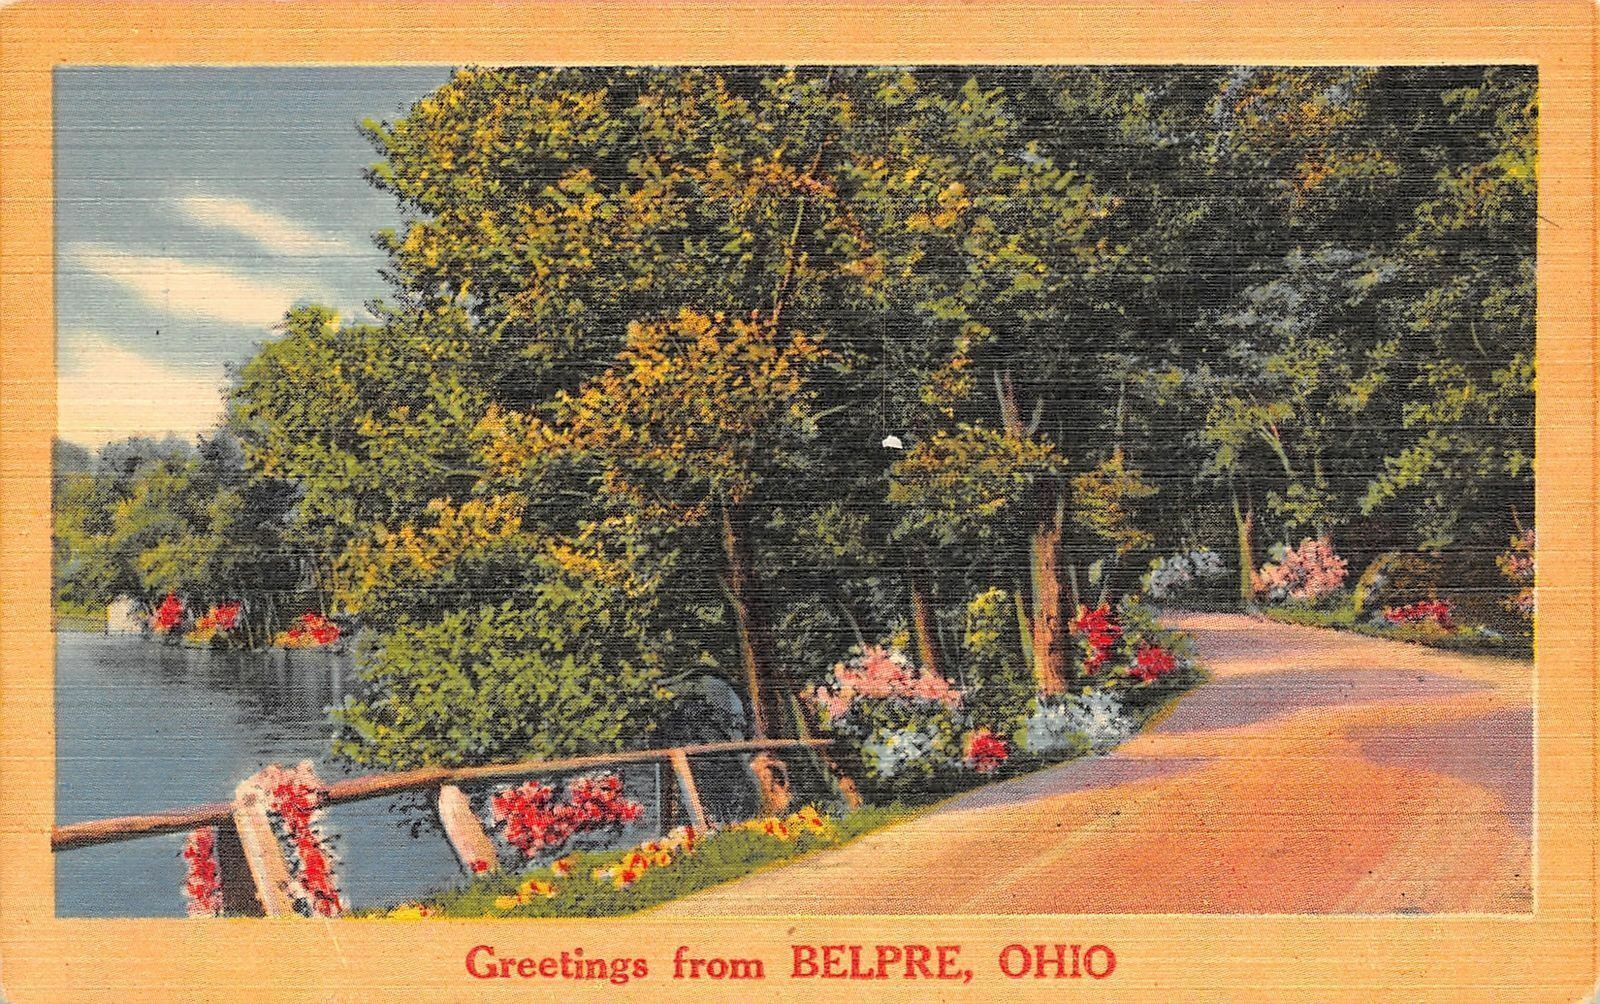 Belpre Ohio~Flower-Lined Road Along the Ohio River~1940s Greetings Postcard